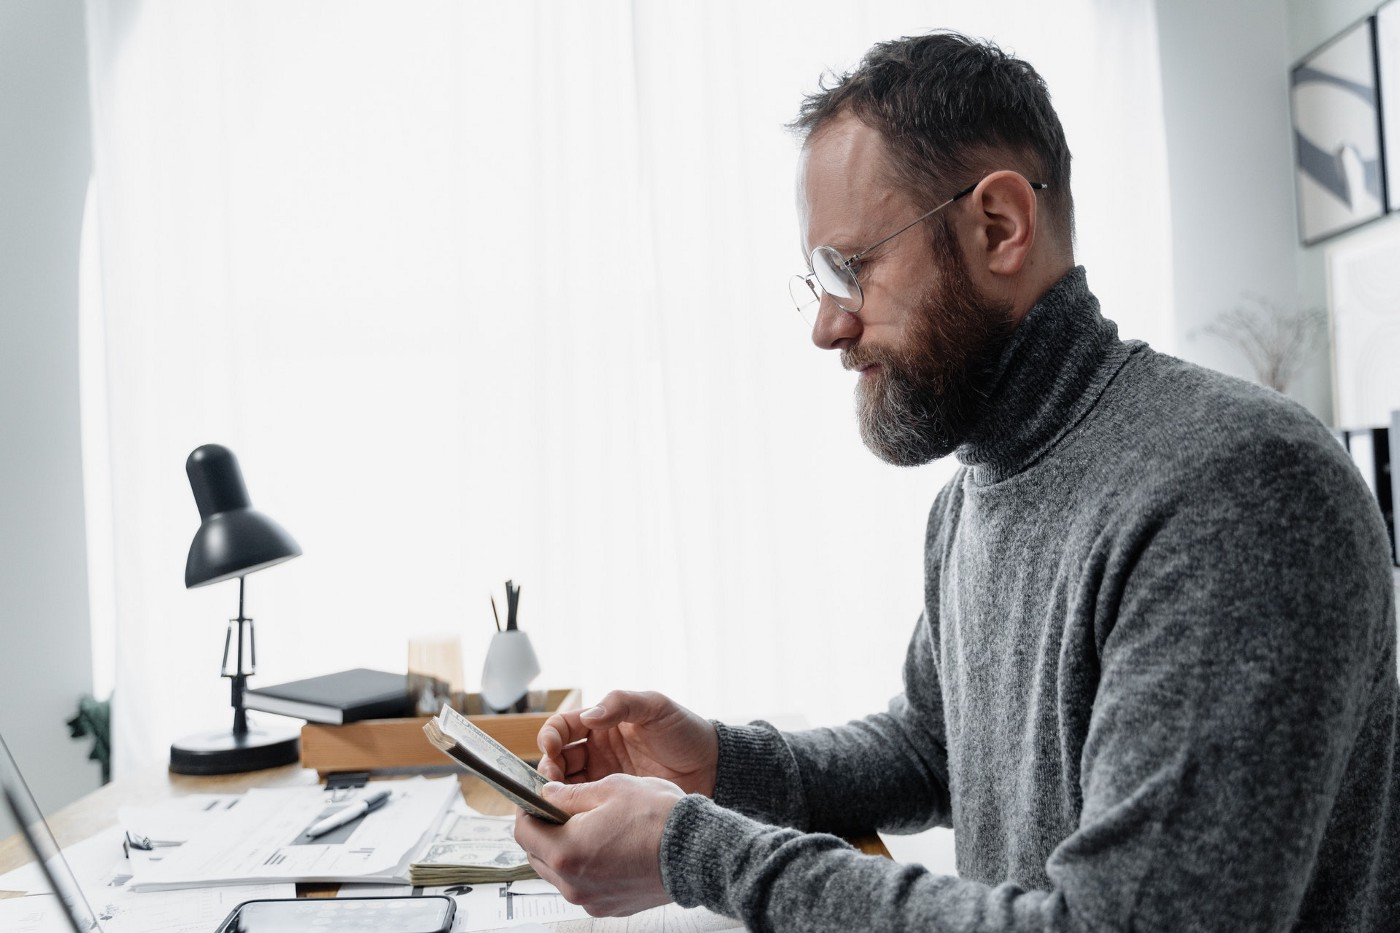 Man with a beard counting money while sitting at his desk